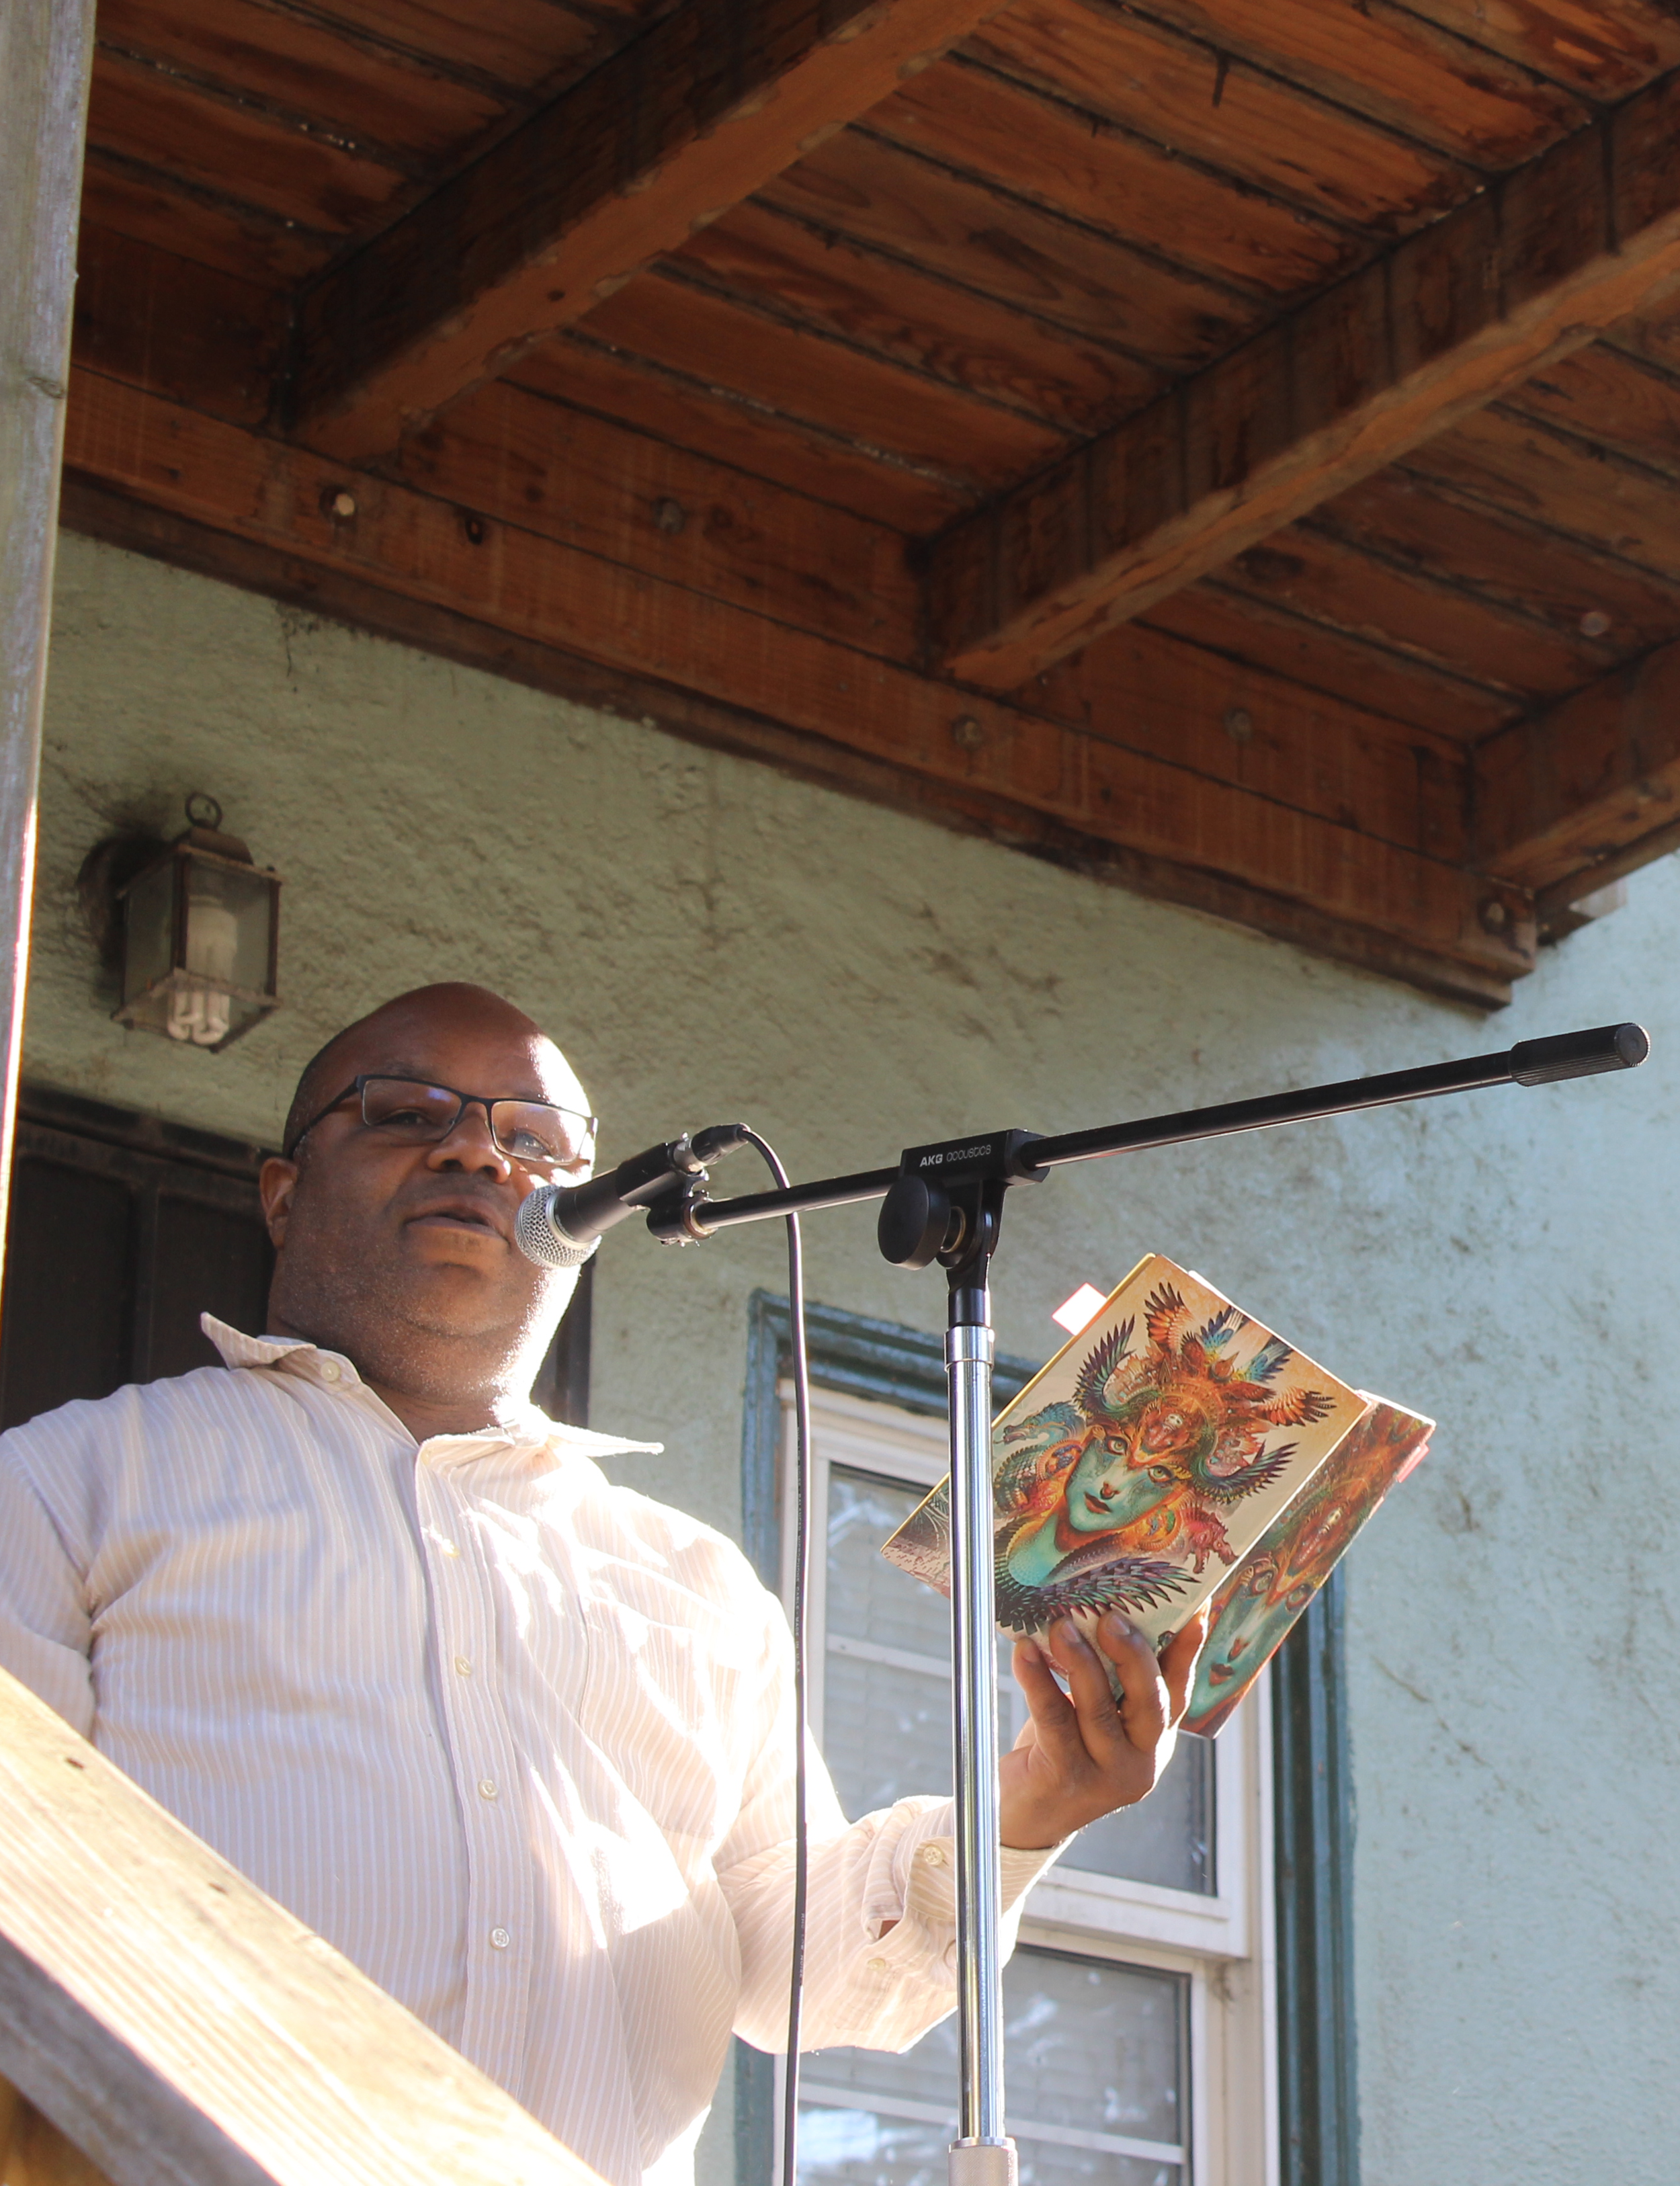 James Cagney reads in the Oak Center neighborhood of West Oakland on 5/11/19